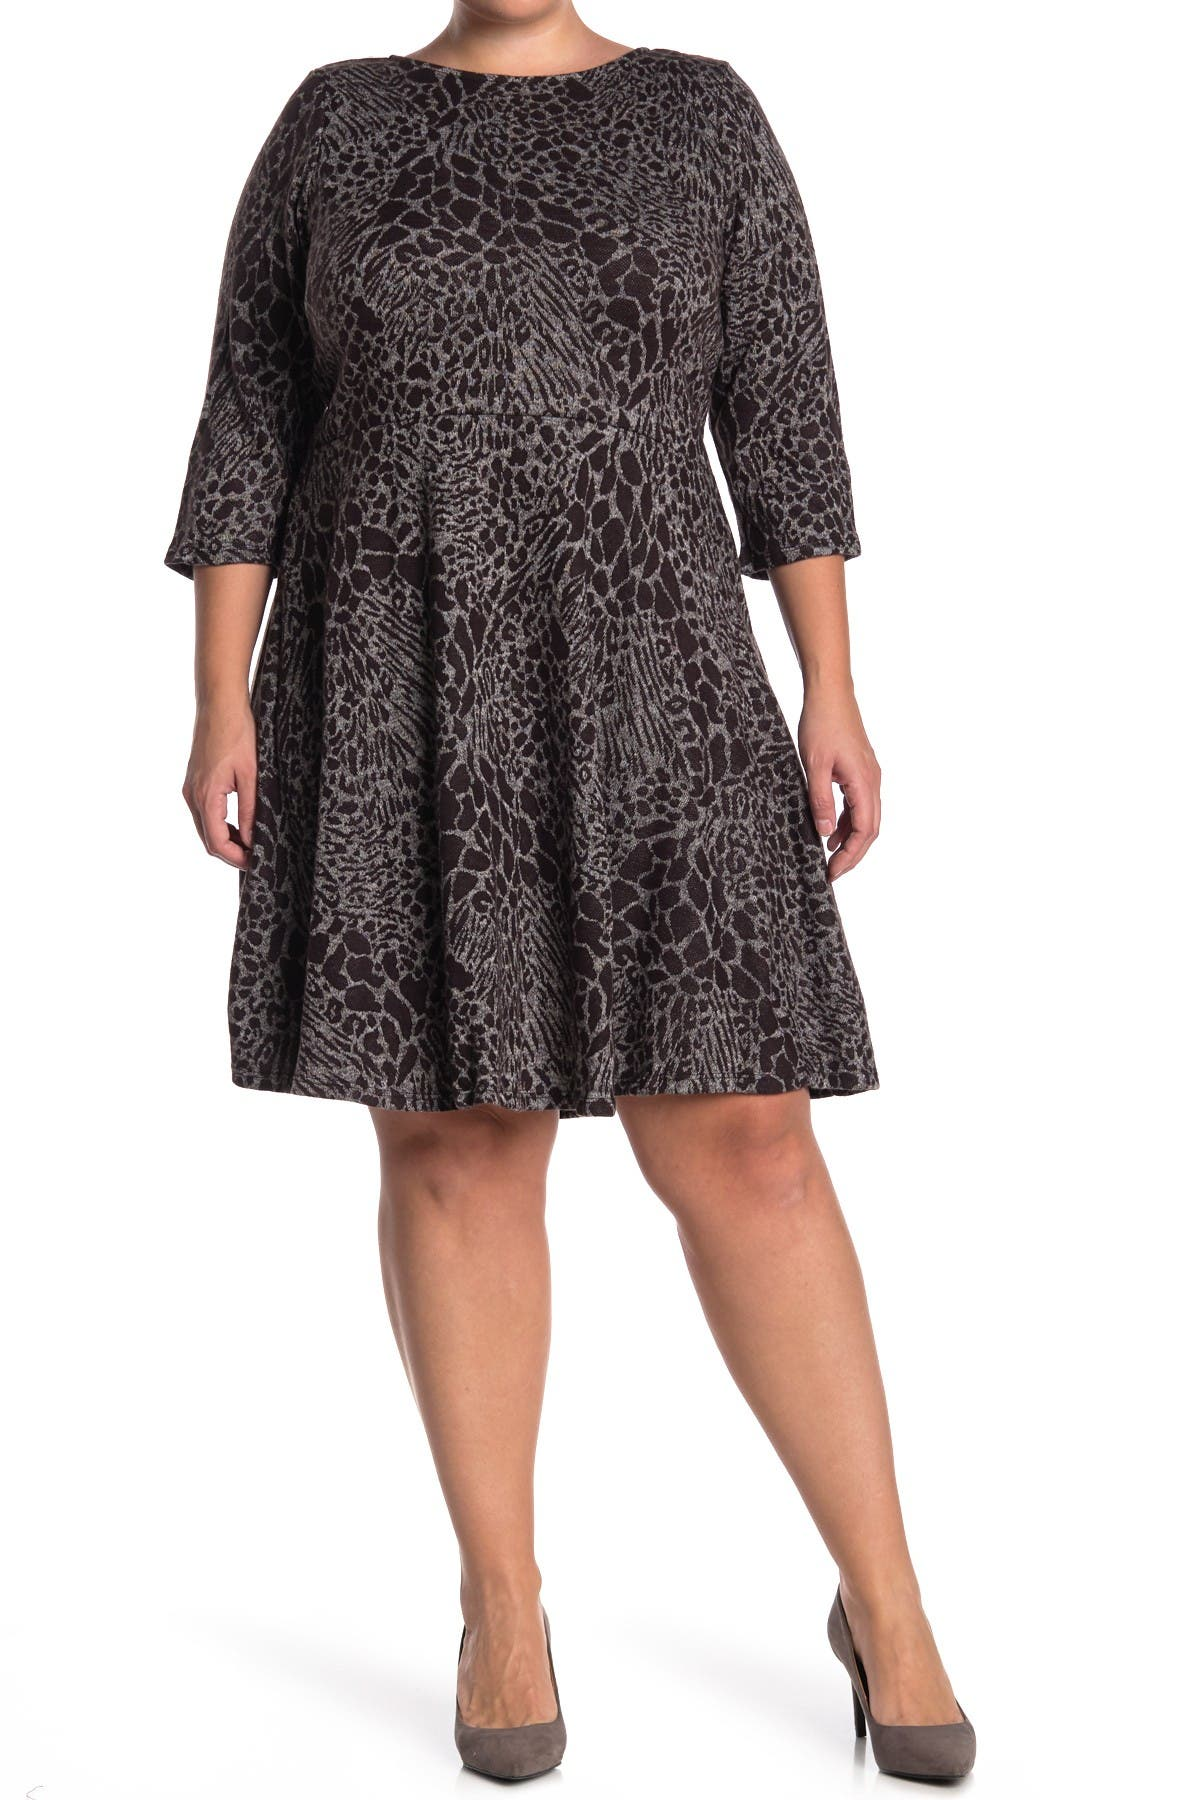 Image of Leota Stretch Knit 3/4 Sleeve Fit & Flare Dress